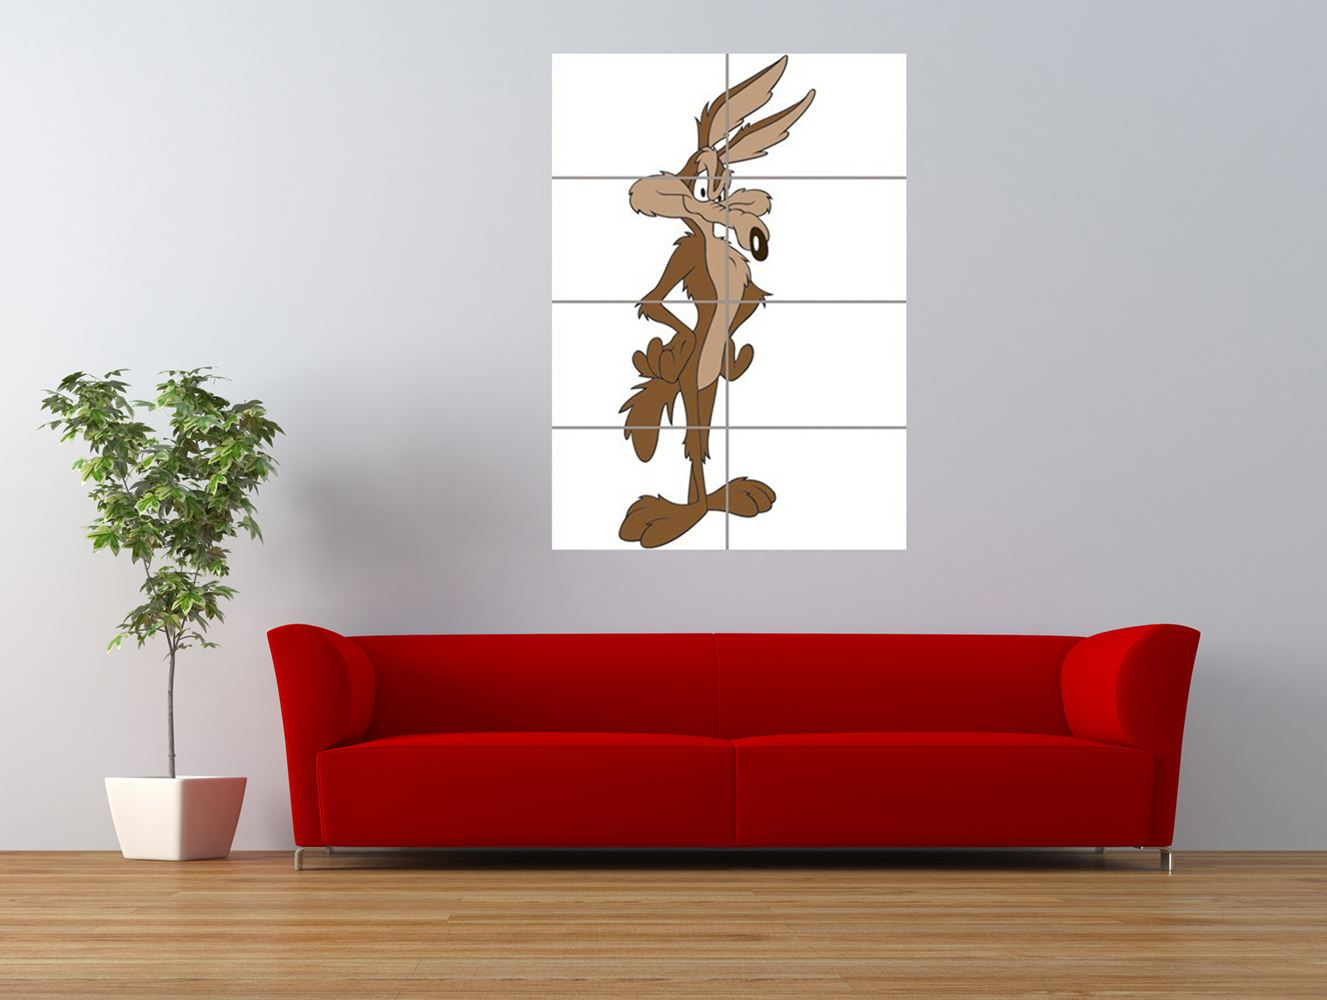 wile e coyote road runner villain giant art print panel poster nor0560 ebay. Black Bedroom Furniture Sets. Home Design Ideas